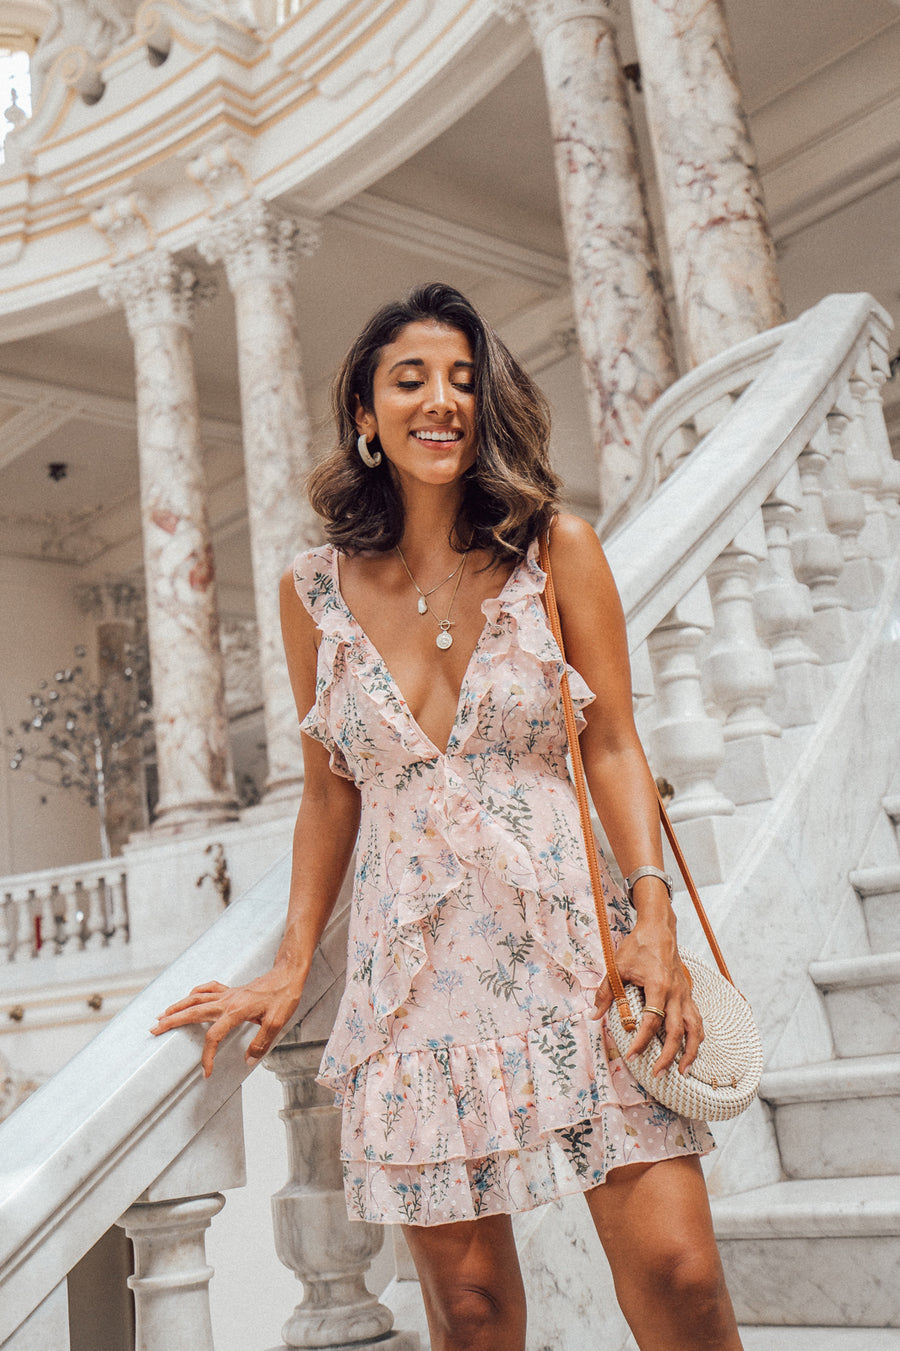 @maya_gypsy in our Sweet Escape pink floral dress